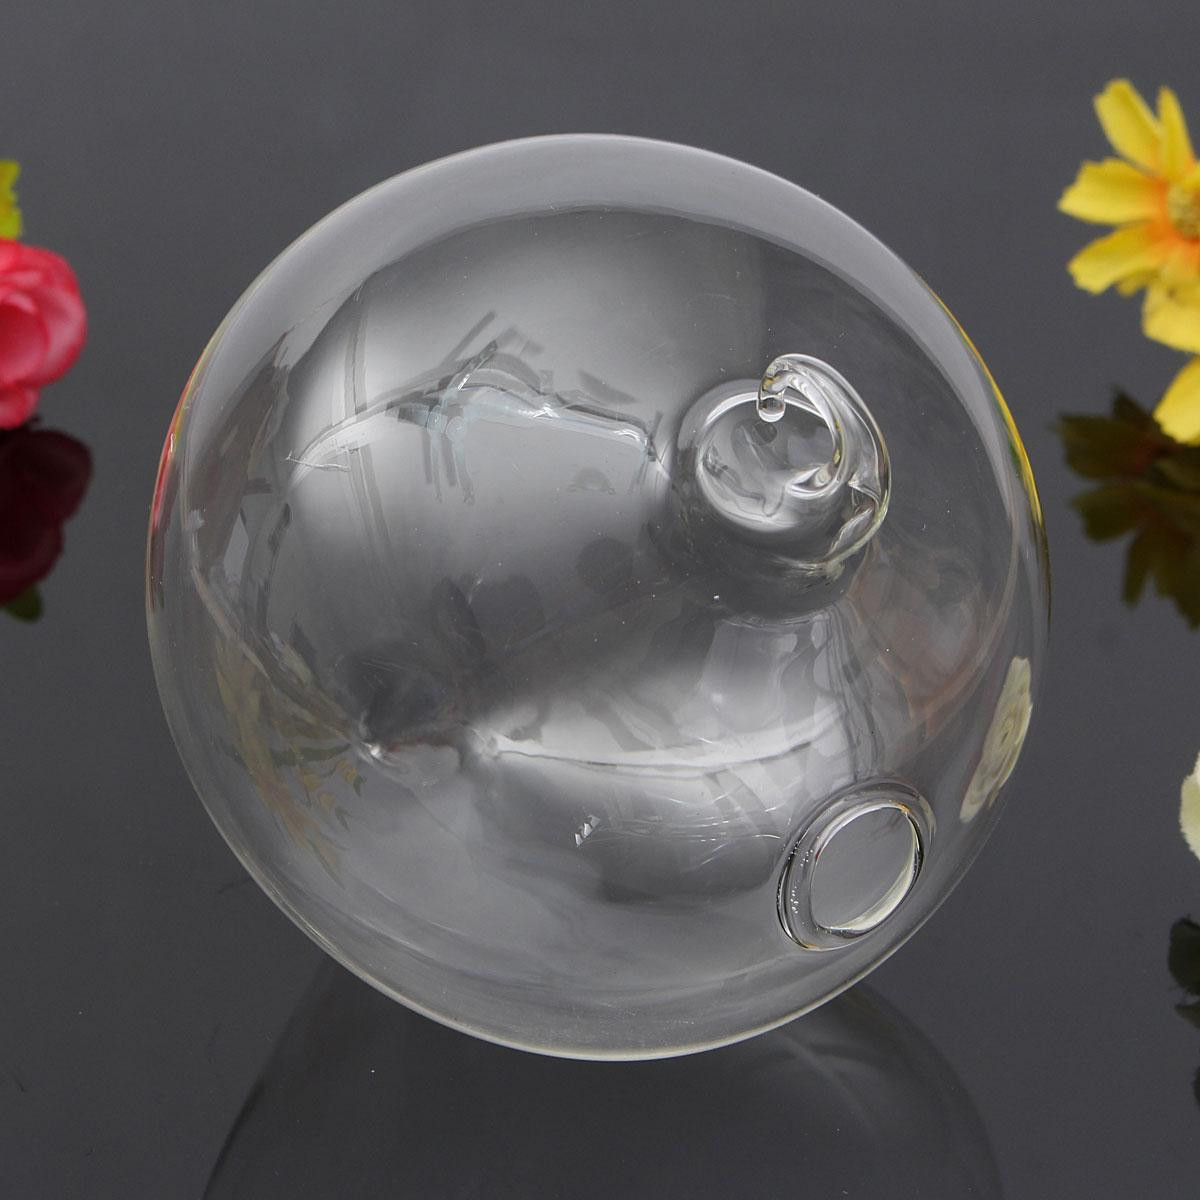 hanging bubble vase of hot sale clear onion hanging glass flower plant vase hydroponic with 1 we accept alipay west union tt all major credit cards are accepted through secure payment processor escrow 2 payment must be made within 15 days of